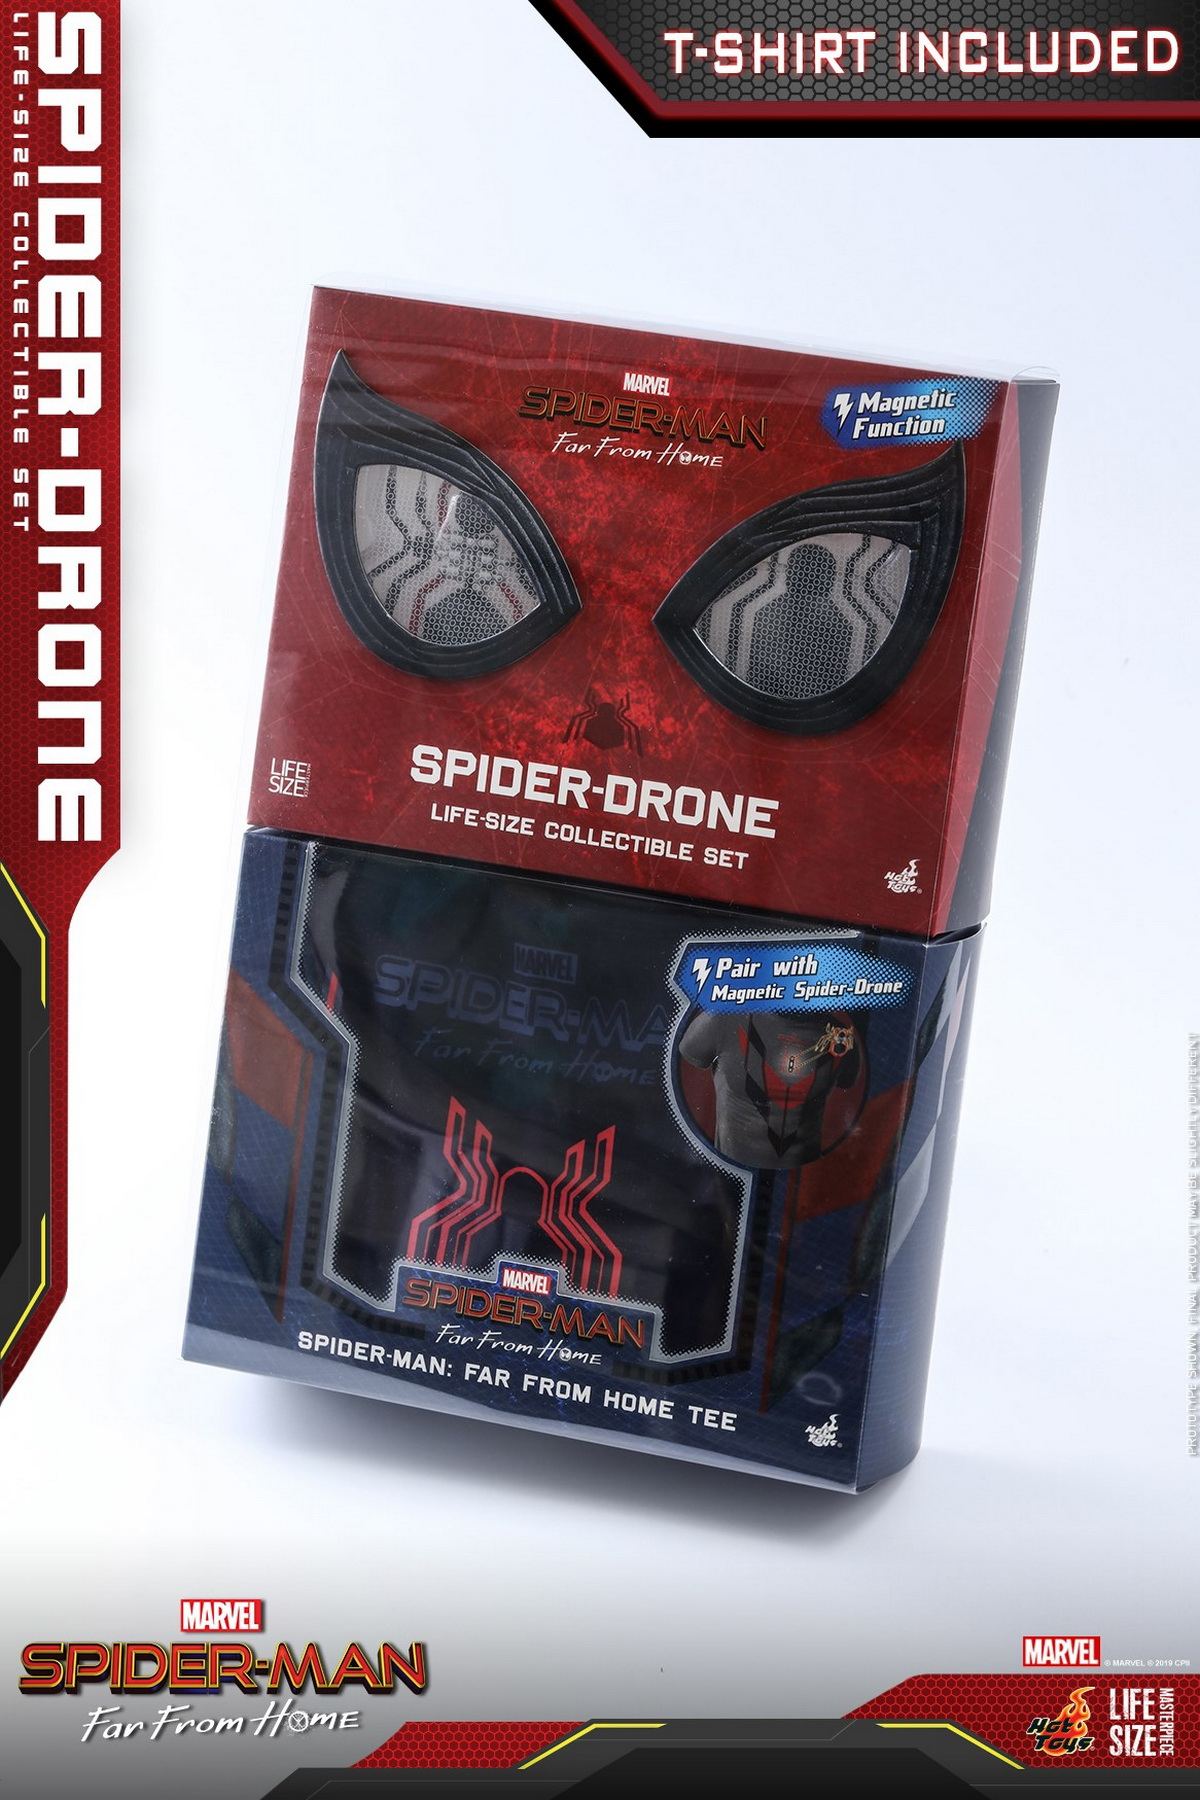 Far From Home Spider-Drone Life-Size Collectible Set LMS011 Hot Toys Spider-Man